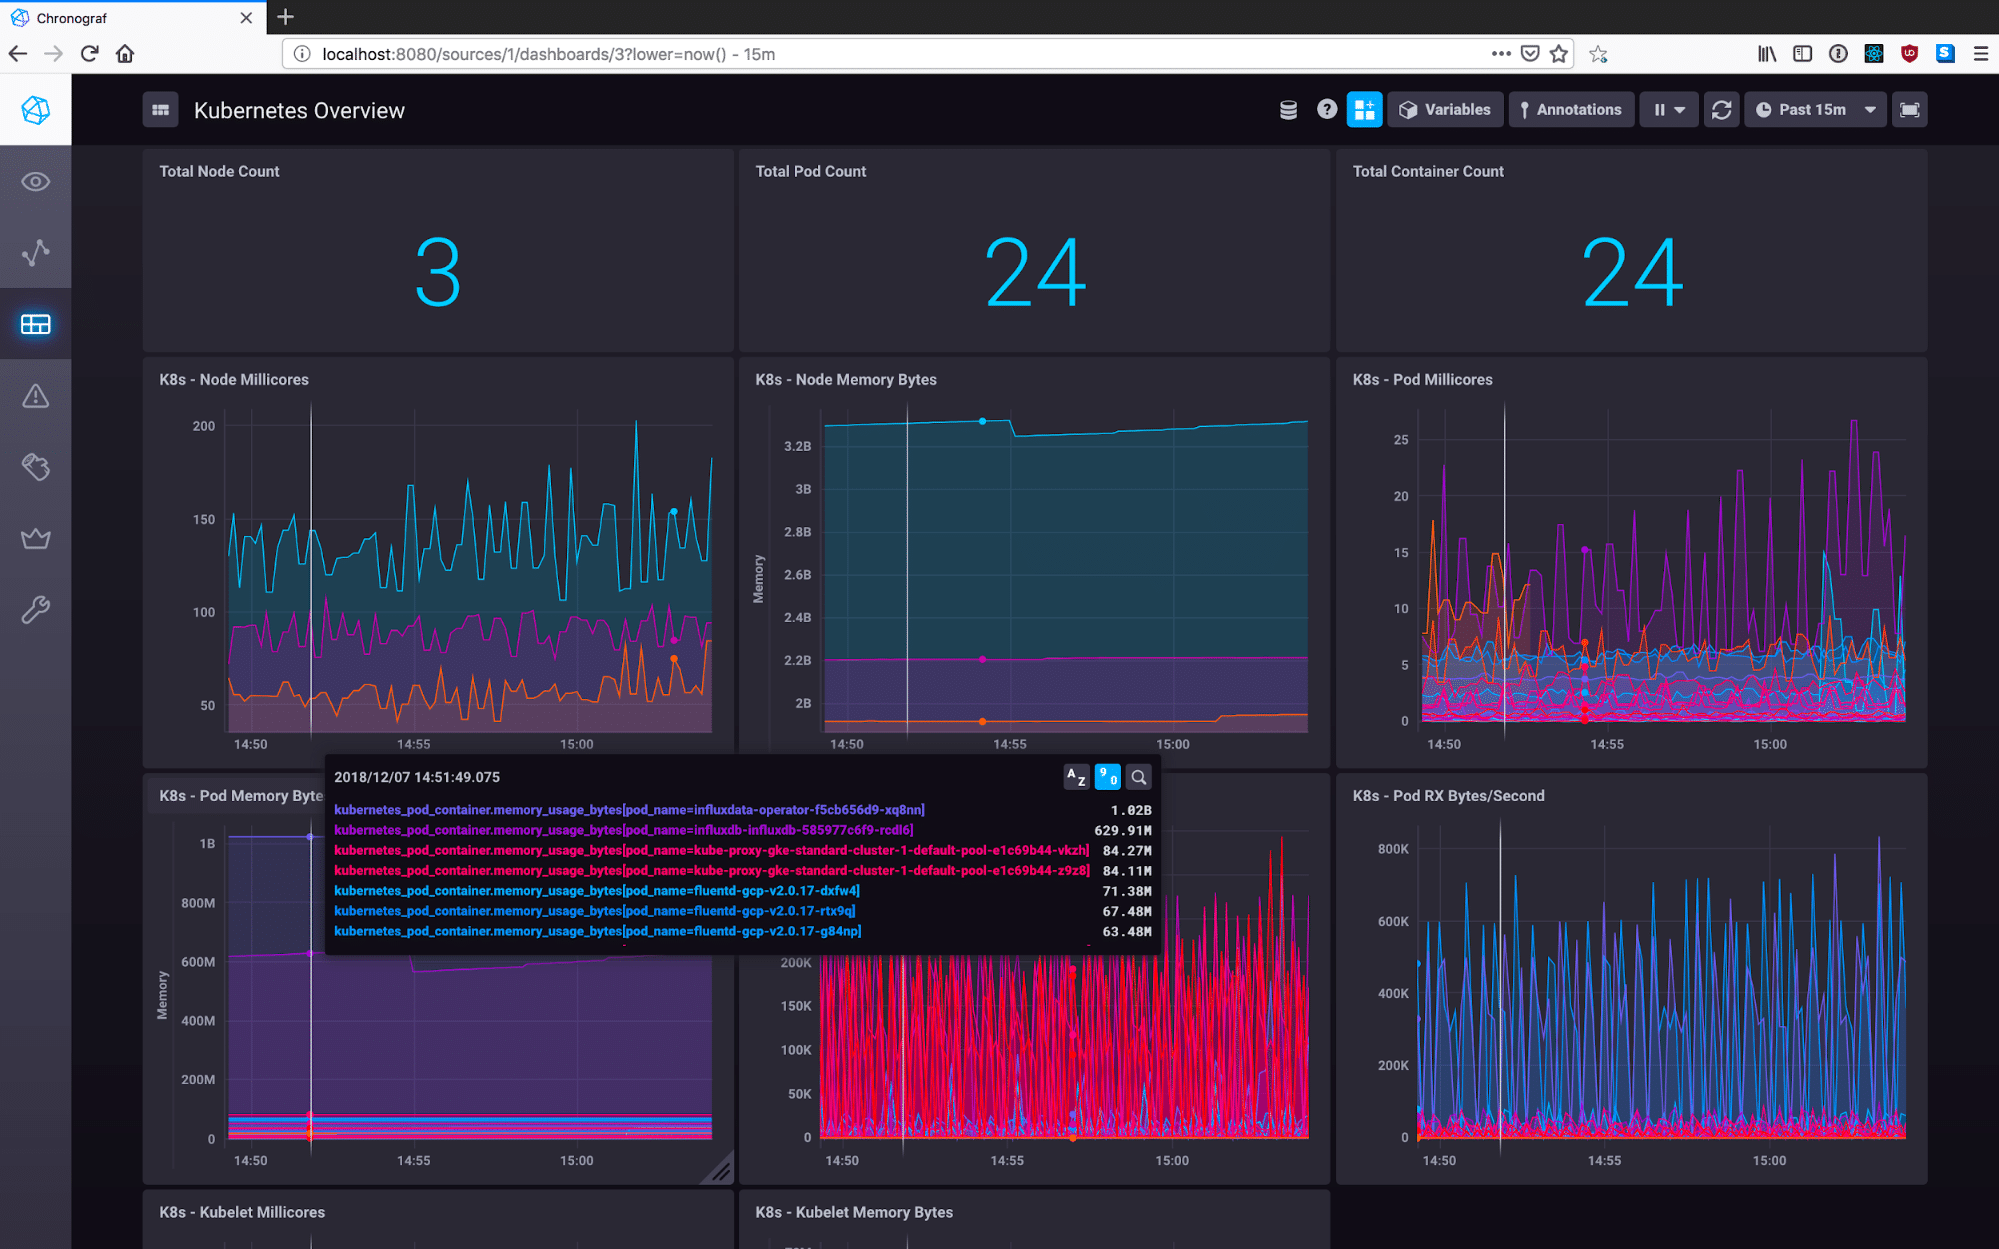 Application performance monitoring with InfluxDB